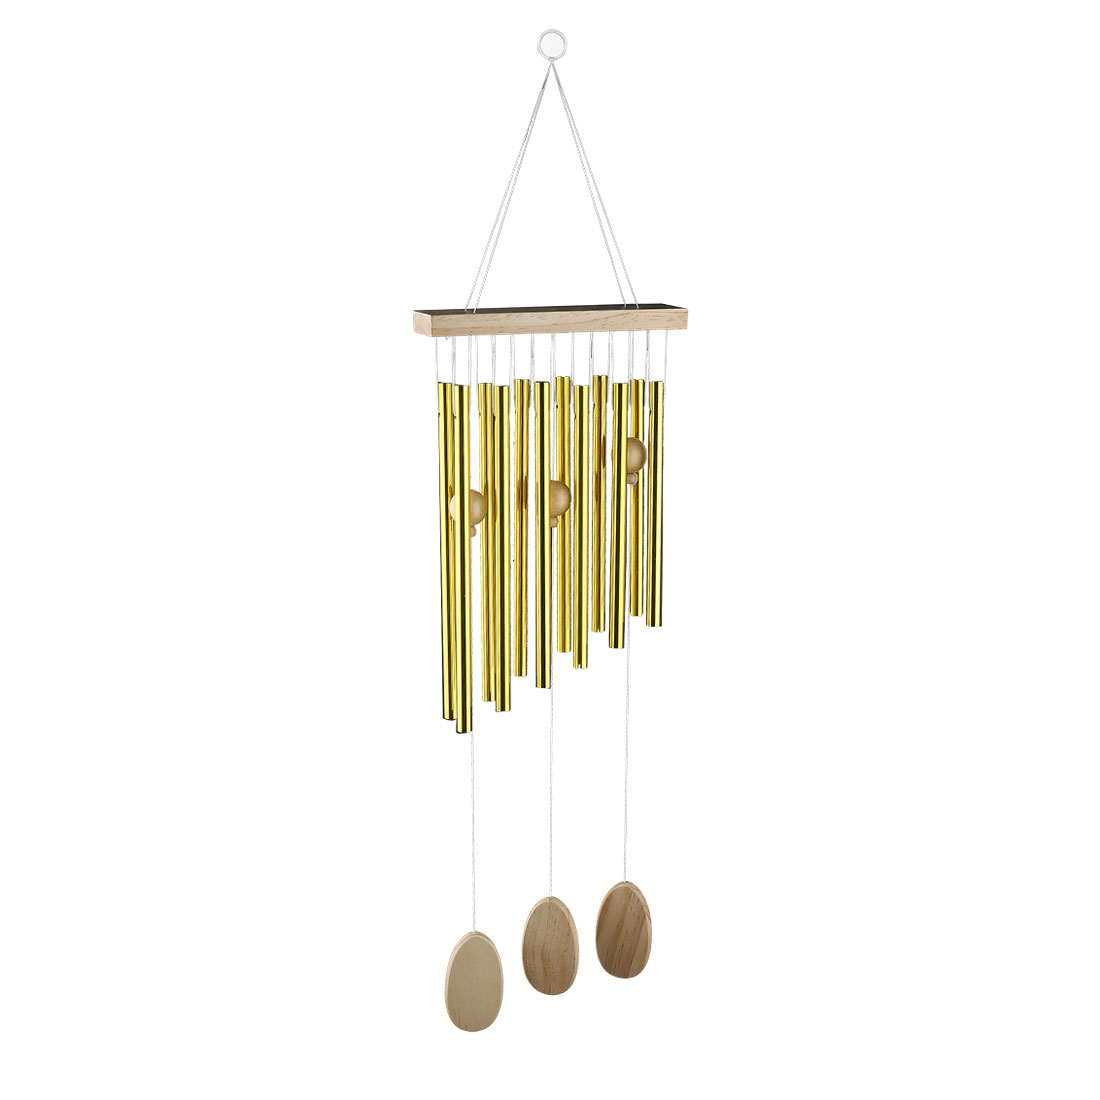 Living Room Metal Tubes Hanging Decor Gift Wind Chime Bell Windbell Gold Tone